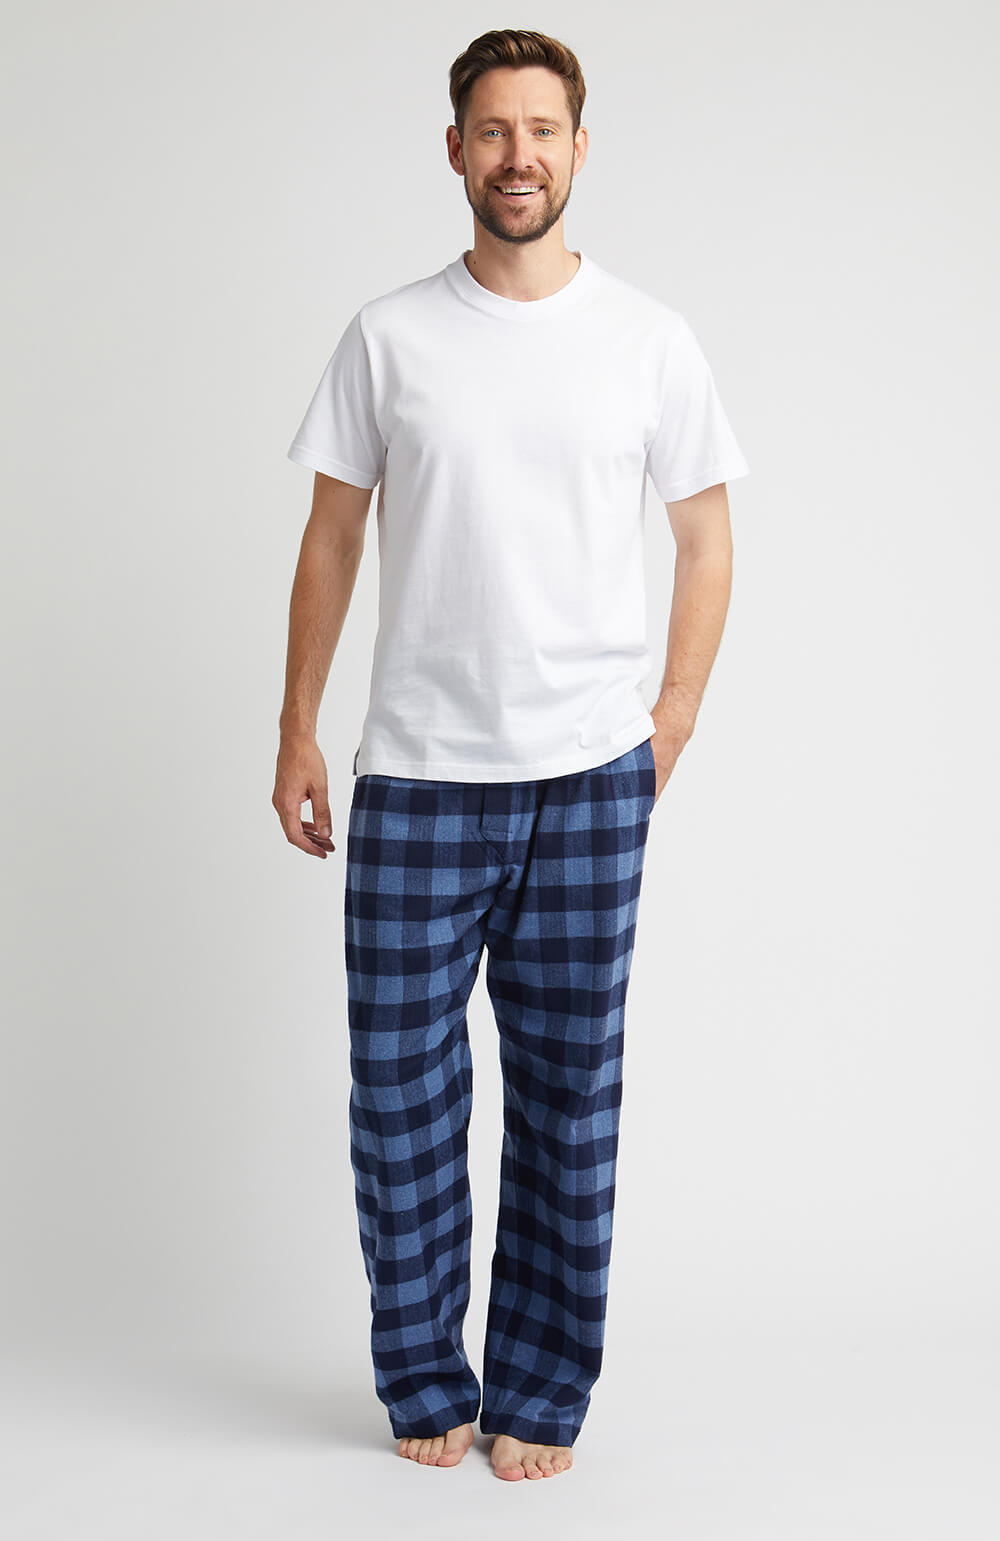 Brushed Cotton Pyjama Trousers (jm54) - Howard | Bonsoir of London